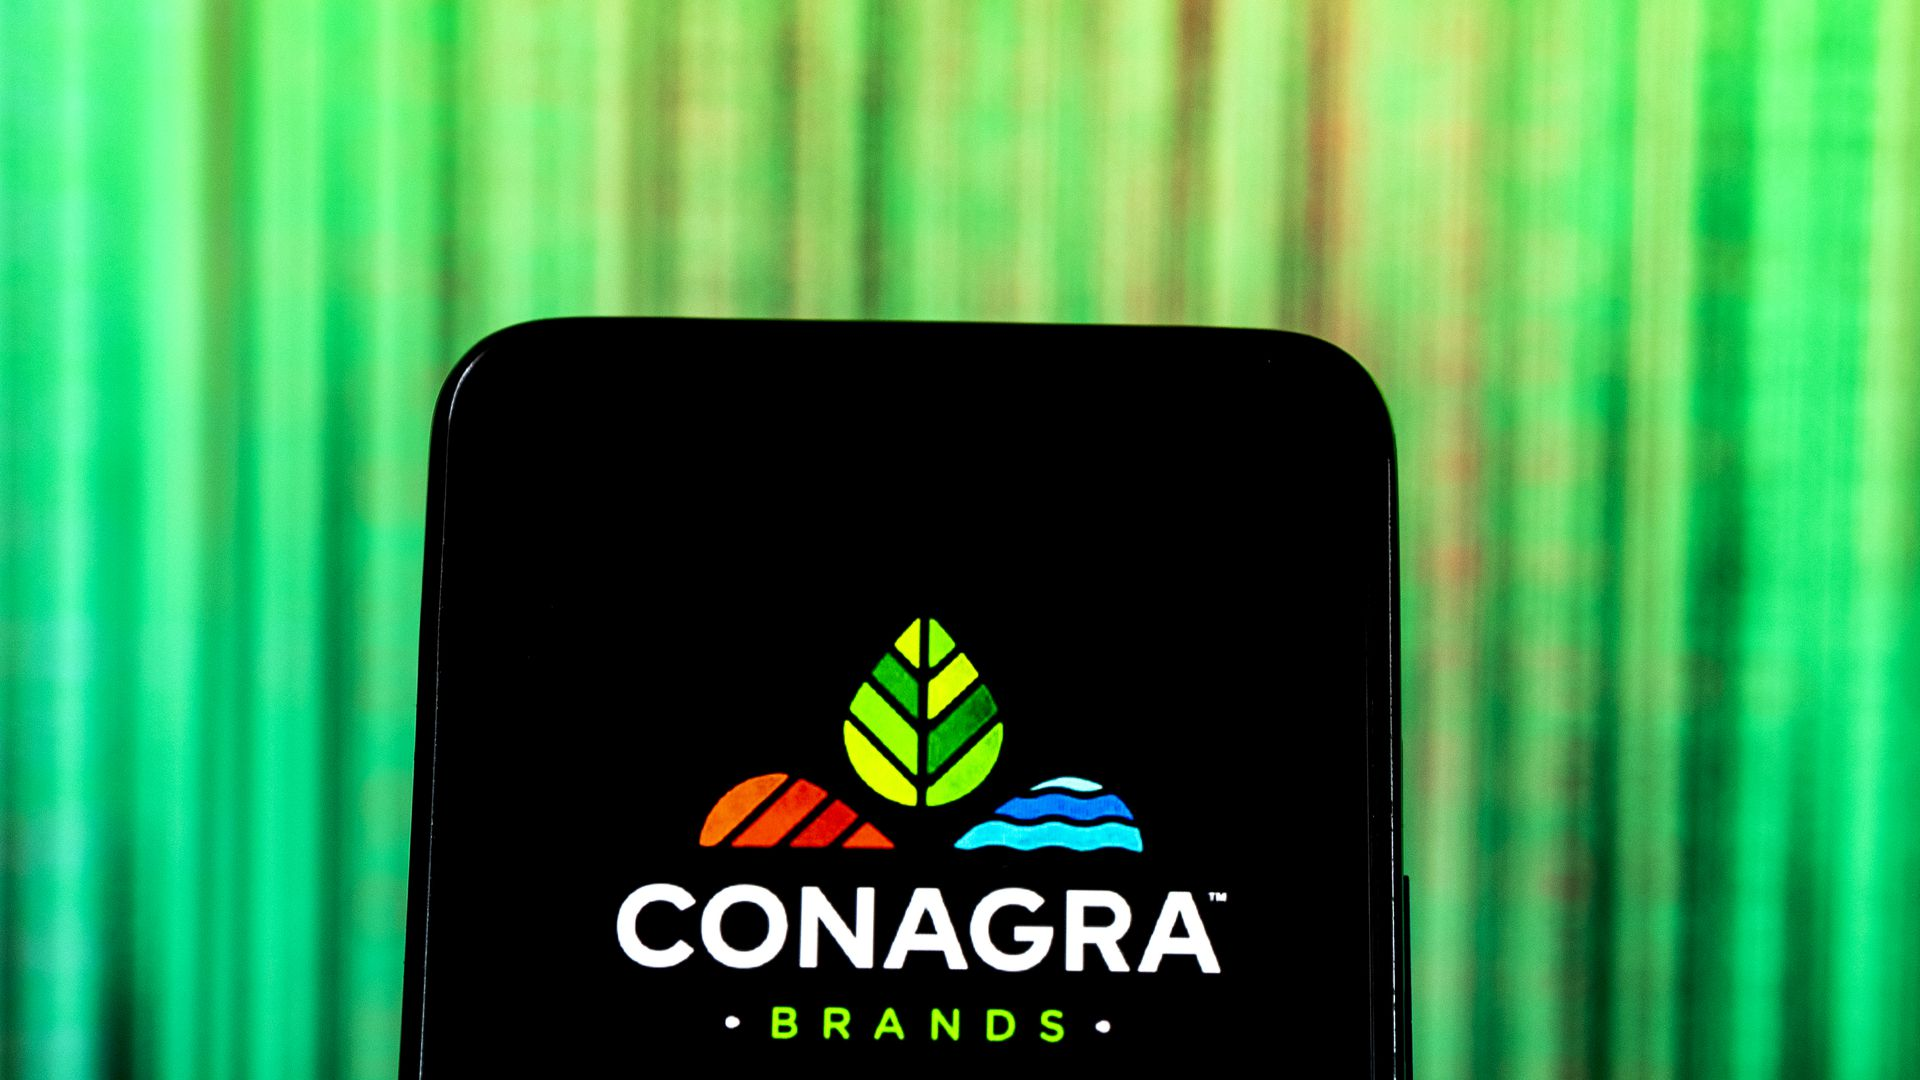 One company targets the feeling of hunger that can follow the consumption of cannabis